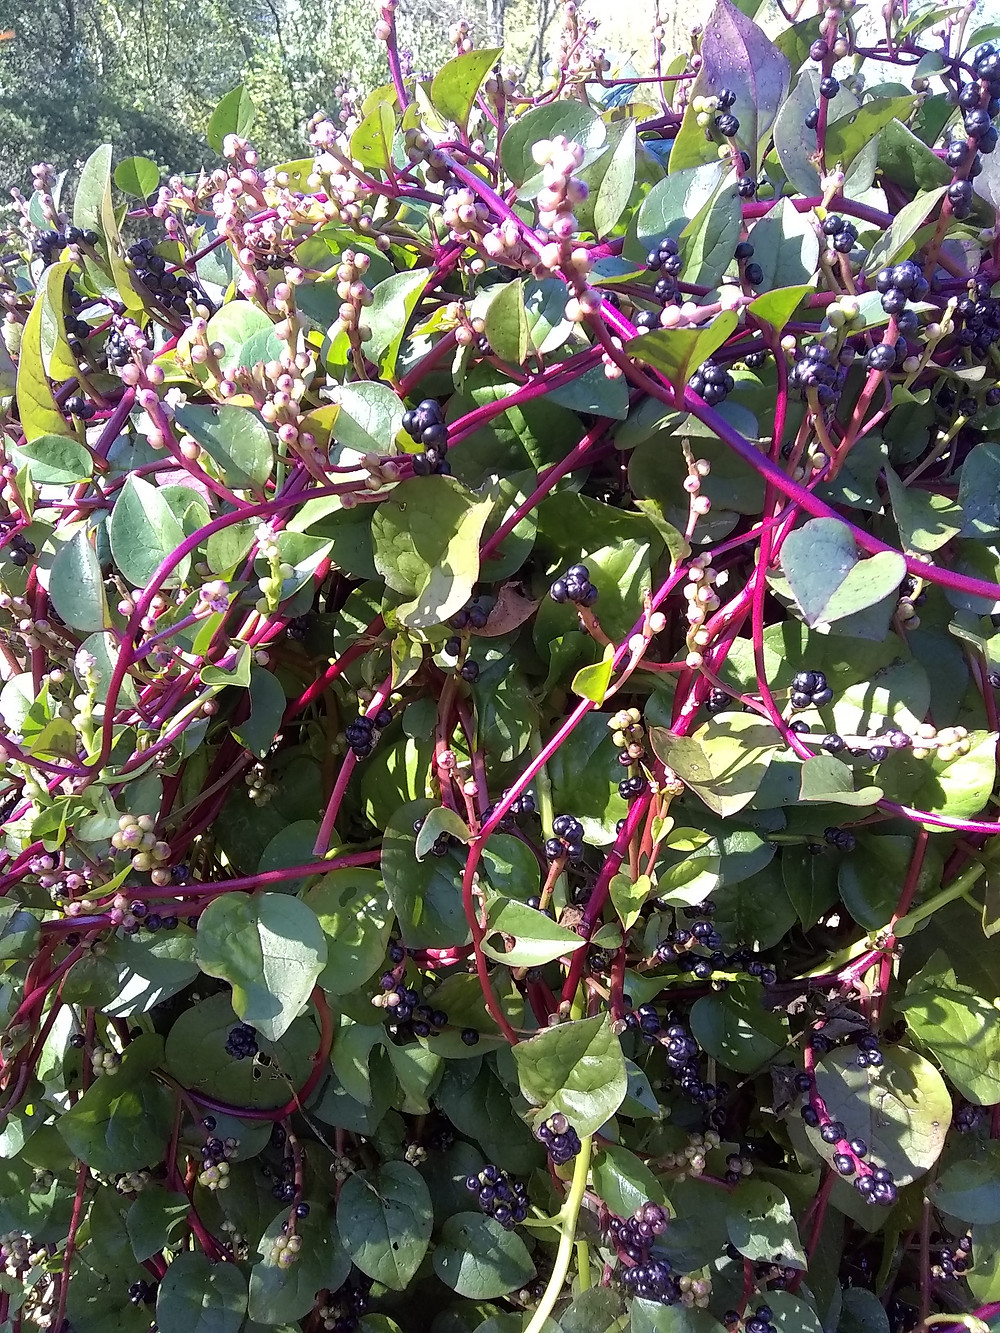 Malabar spinach is a hearty, heat- and drought-tolerant green